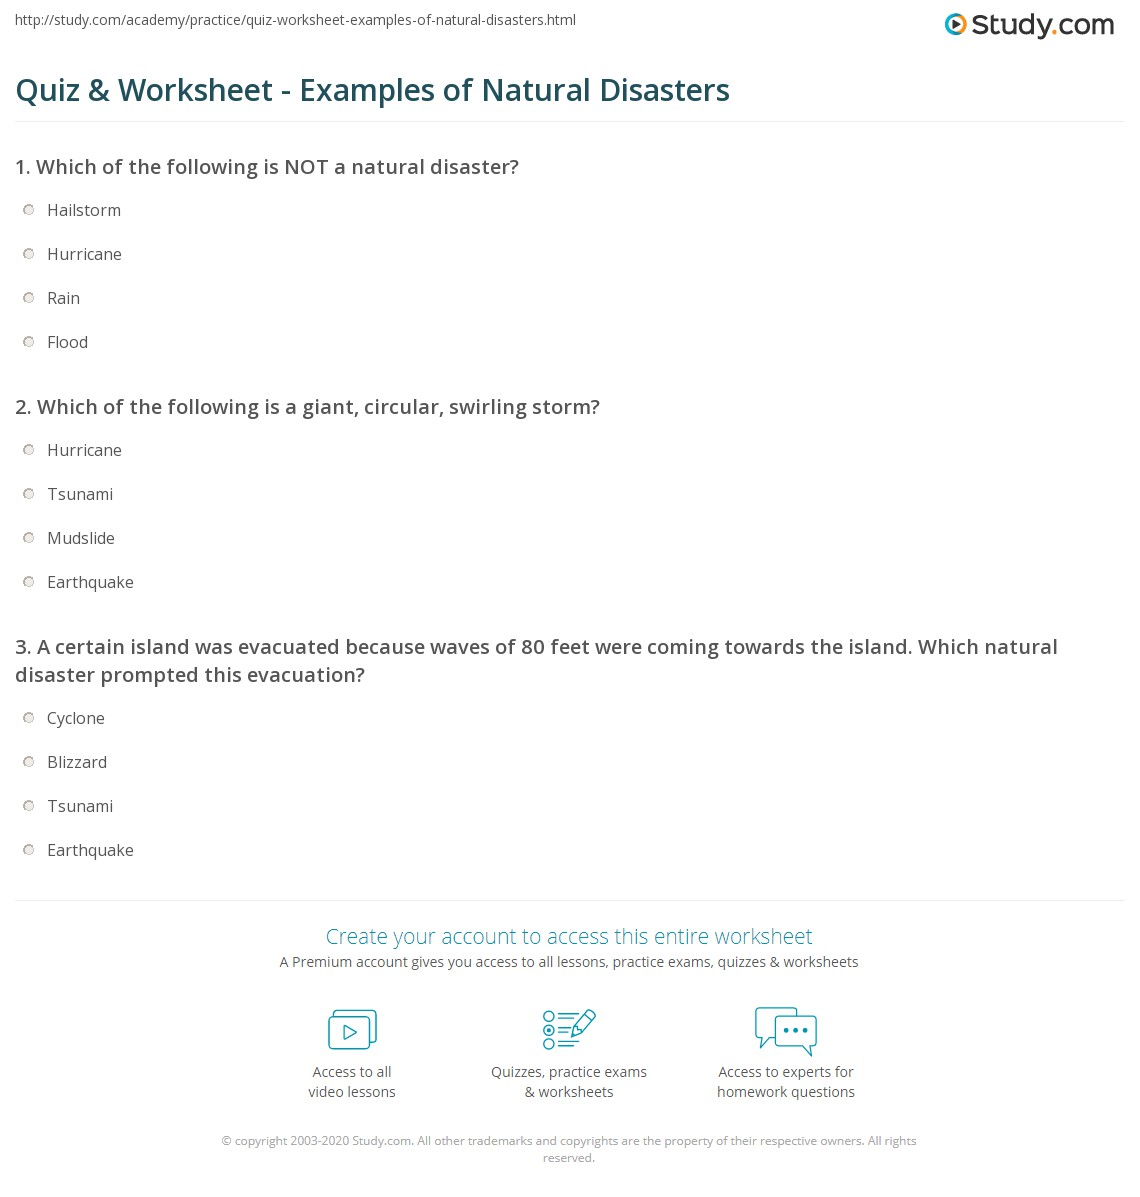 quiz & worksheet - examples of natural disasters | study